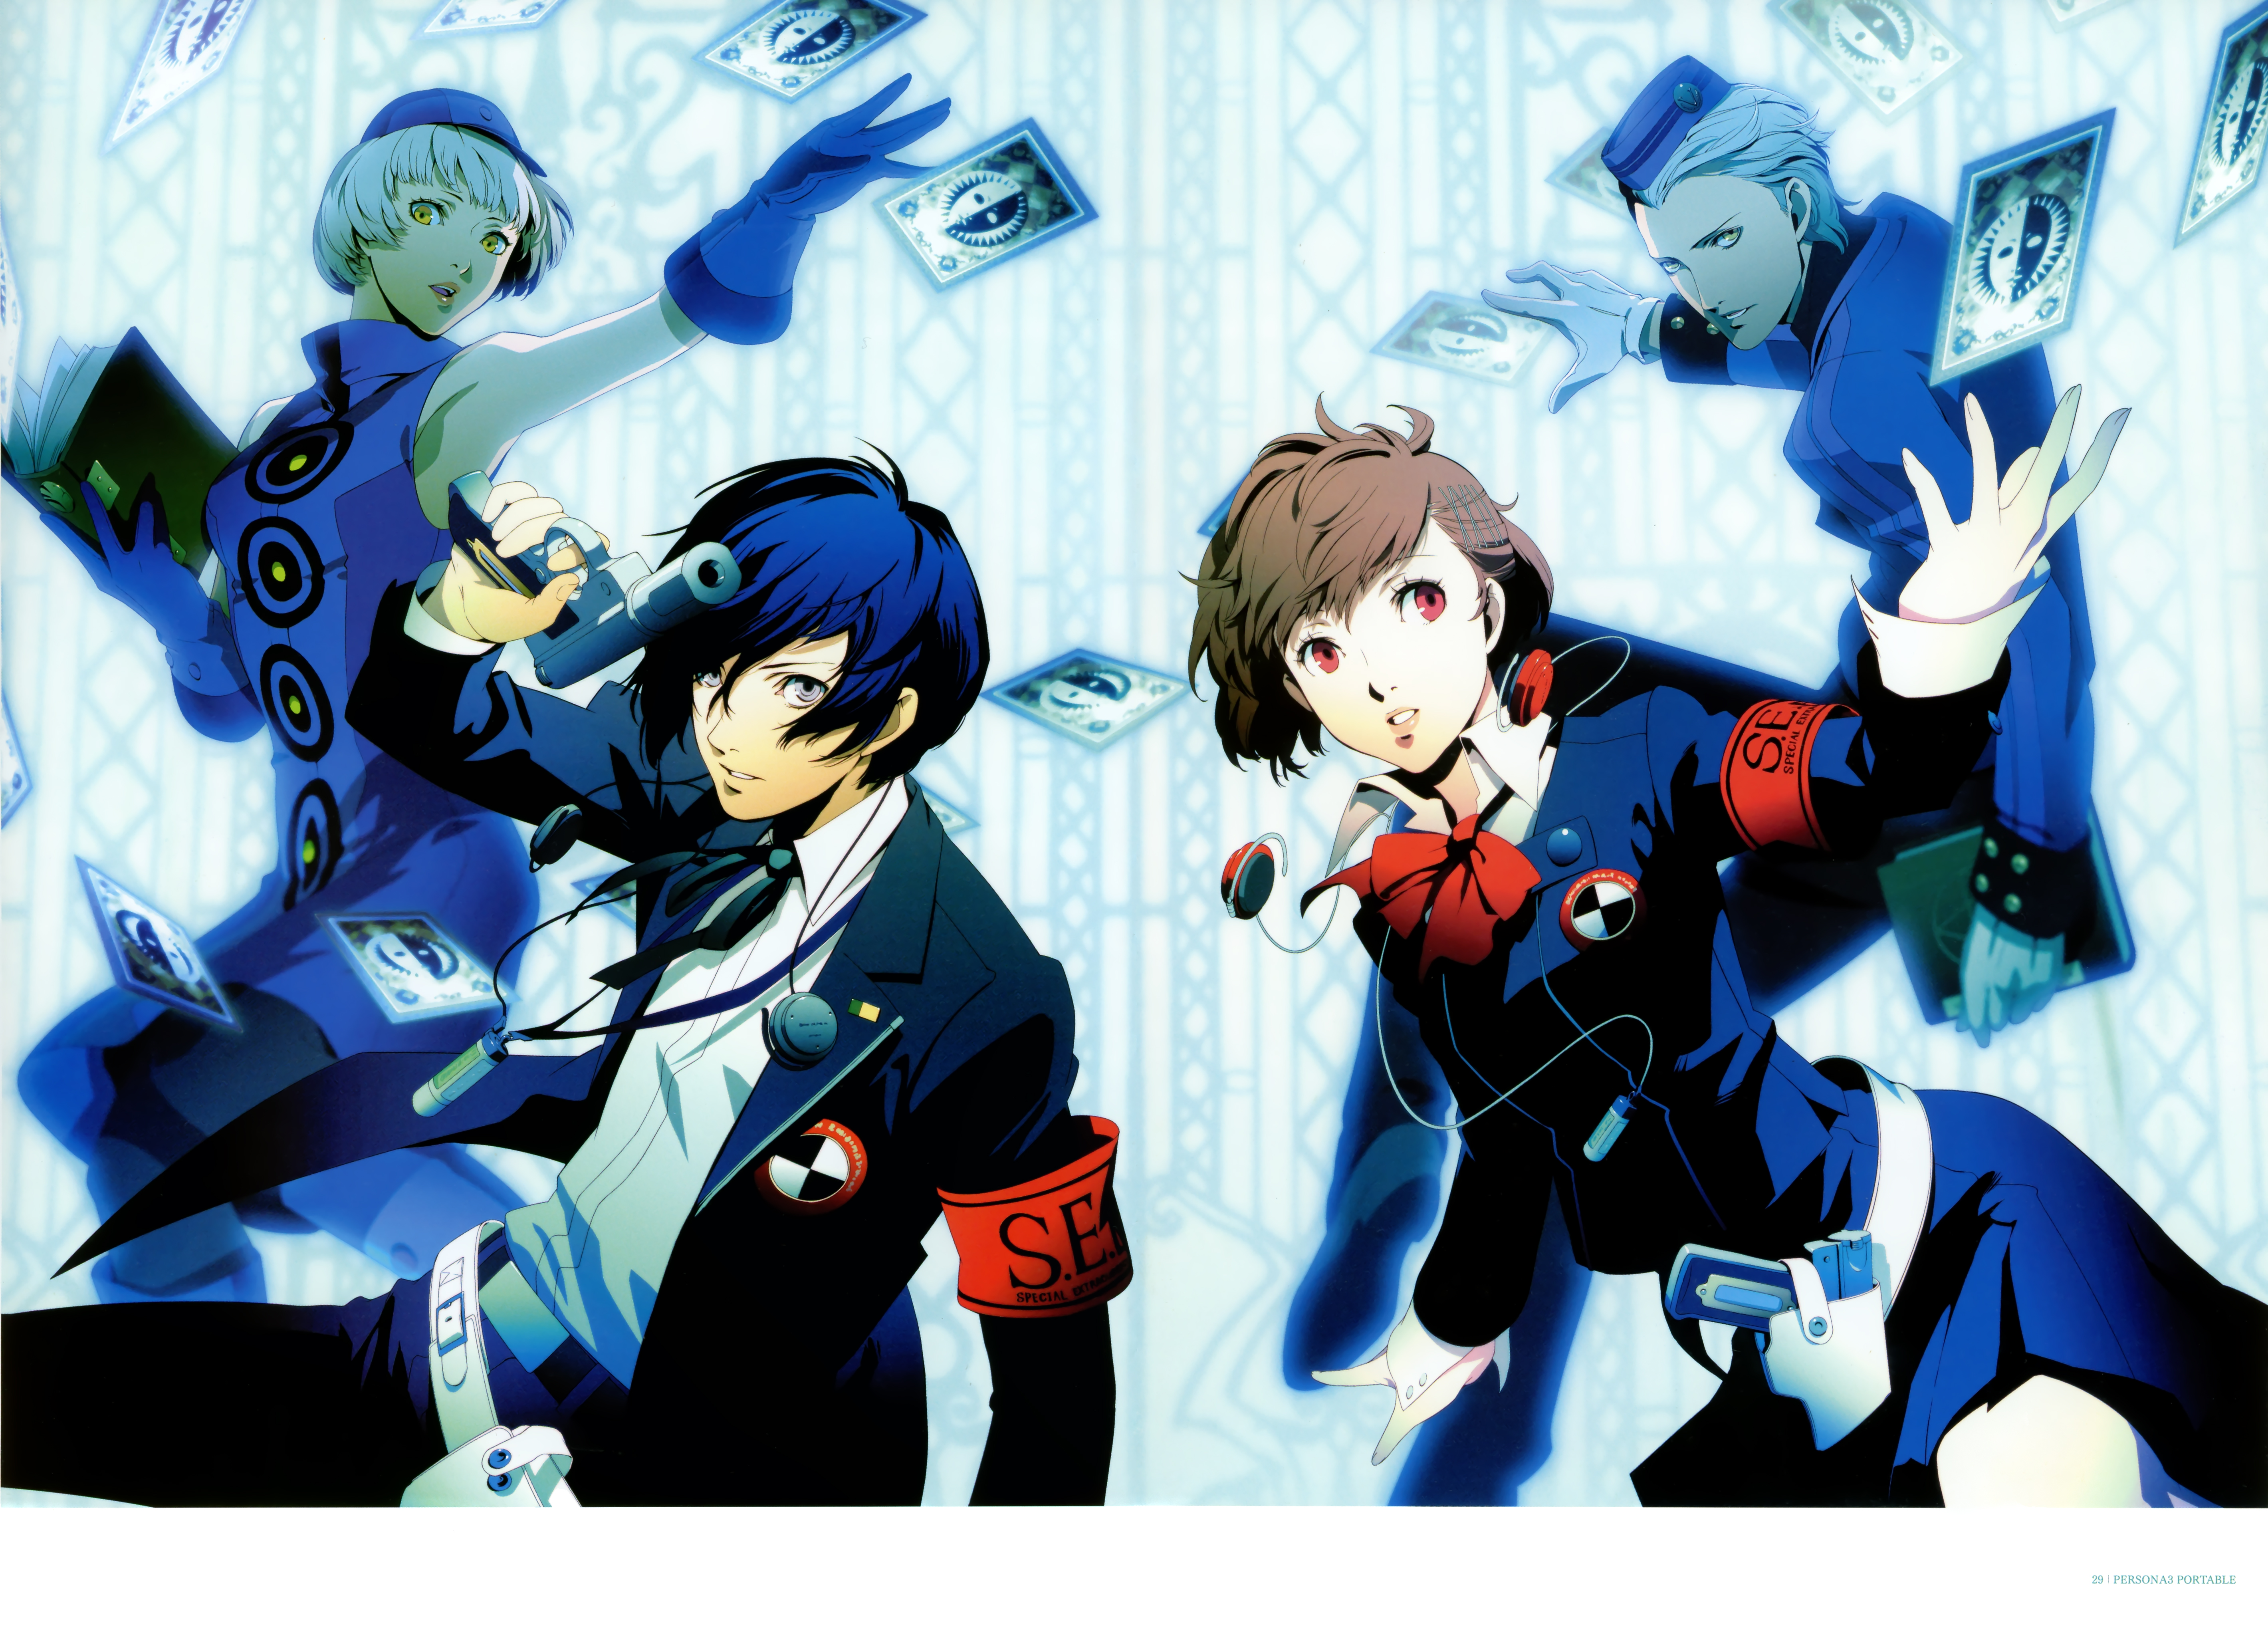 persona 3 female dating Preview: persona 3 portable: outside of dating the three clubs you can join as a female are tennis, volleyball, and archery.